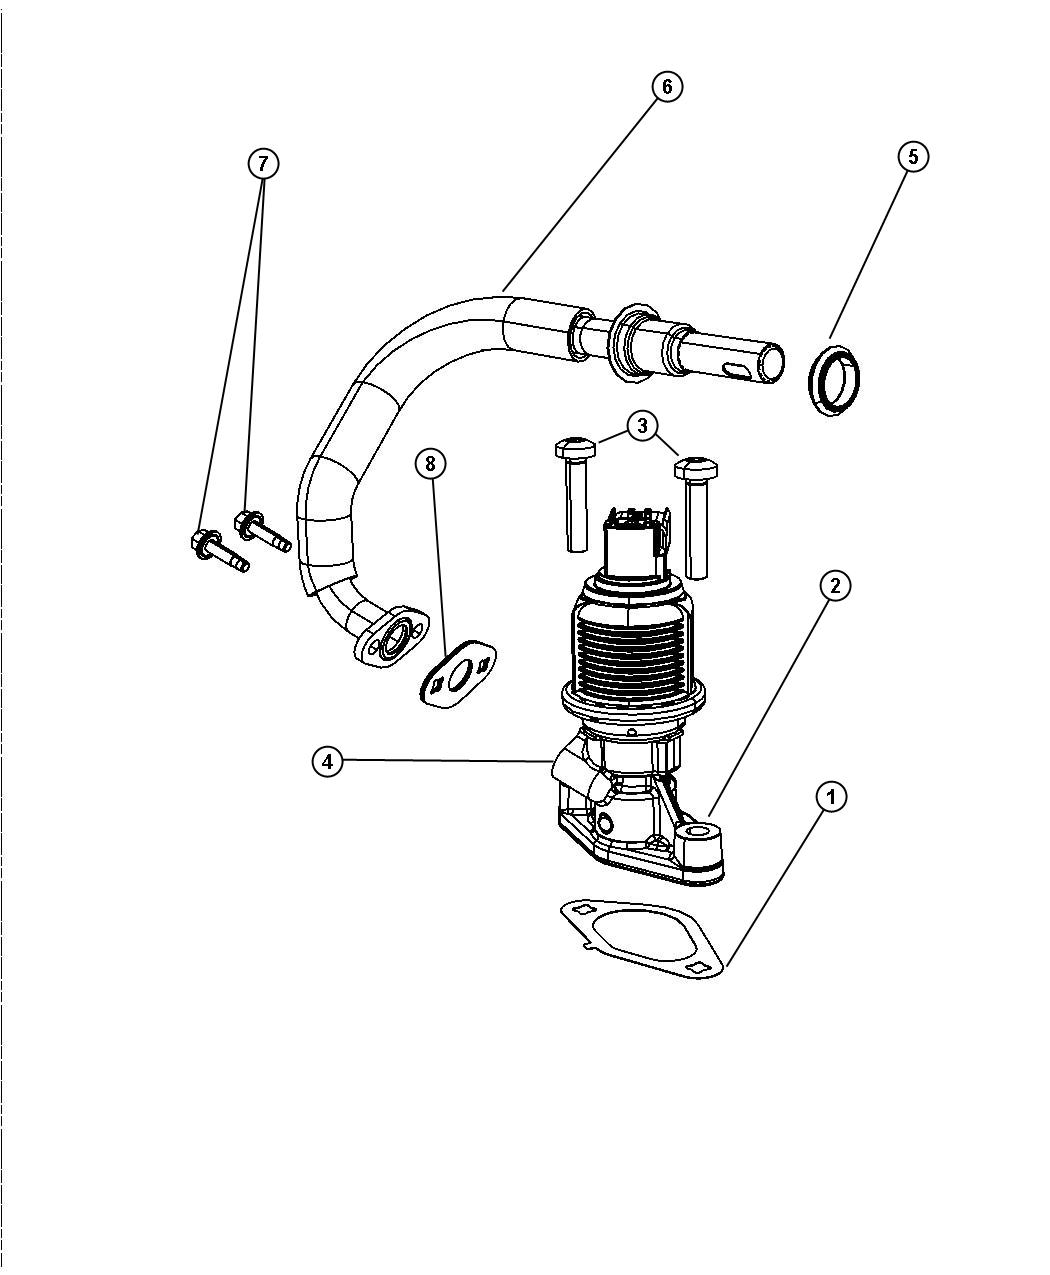 Diagram For A Car Kill Switch Including Rc Boat Motor Wiring Diagram